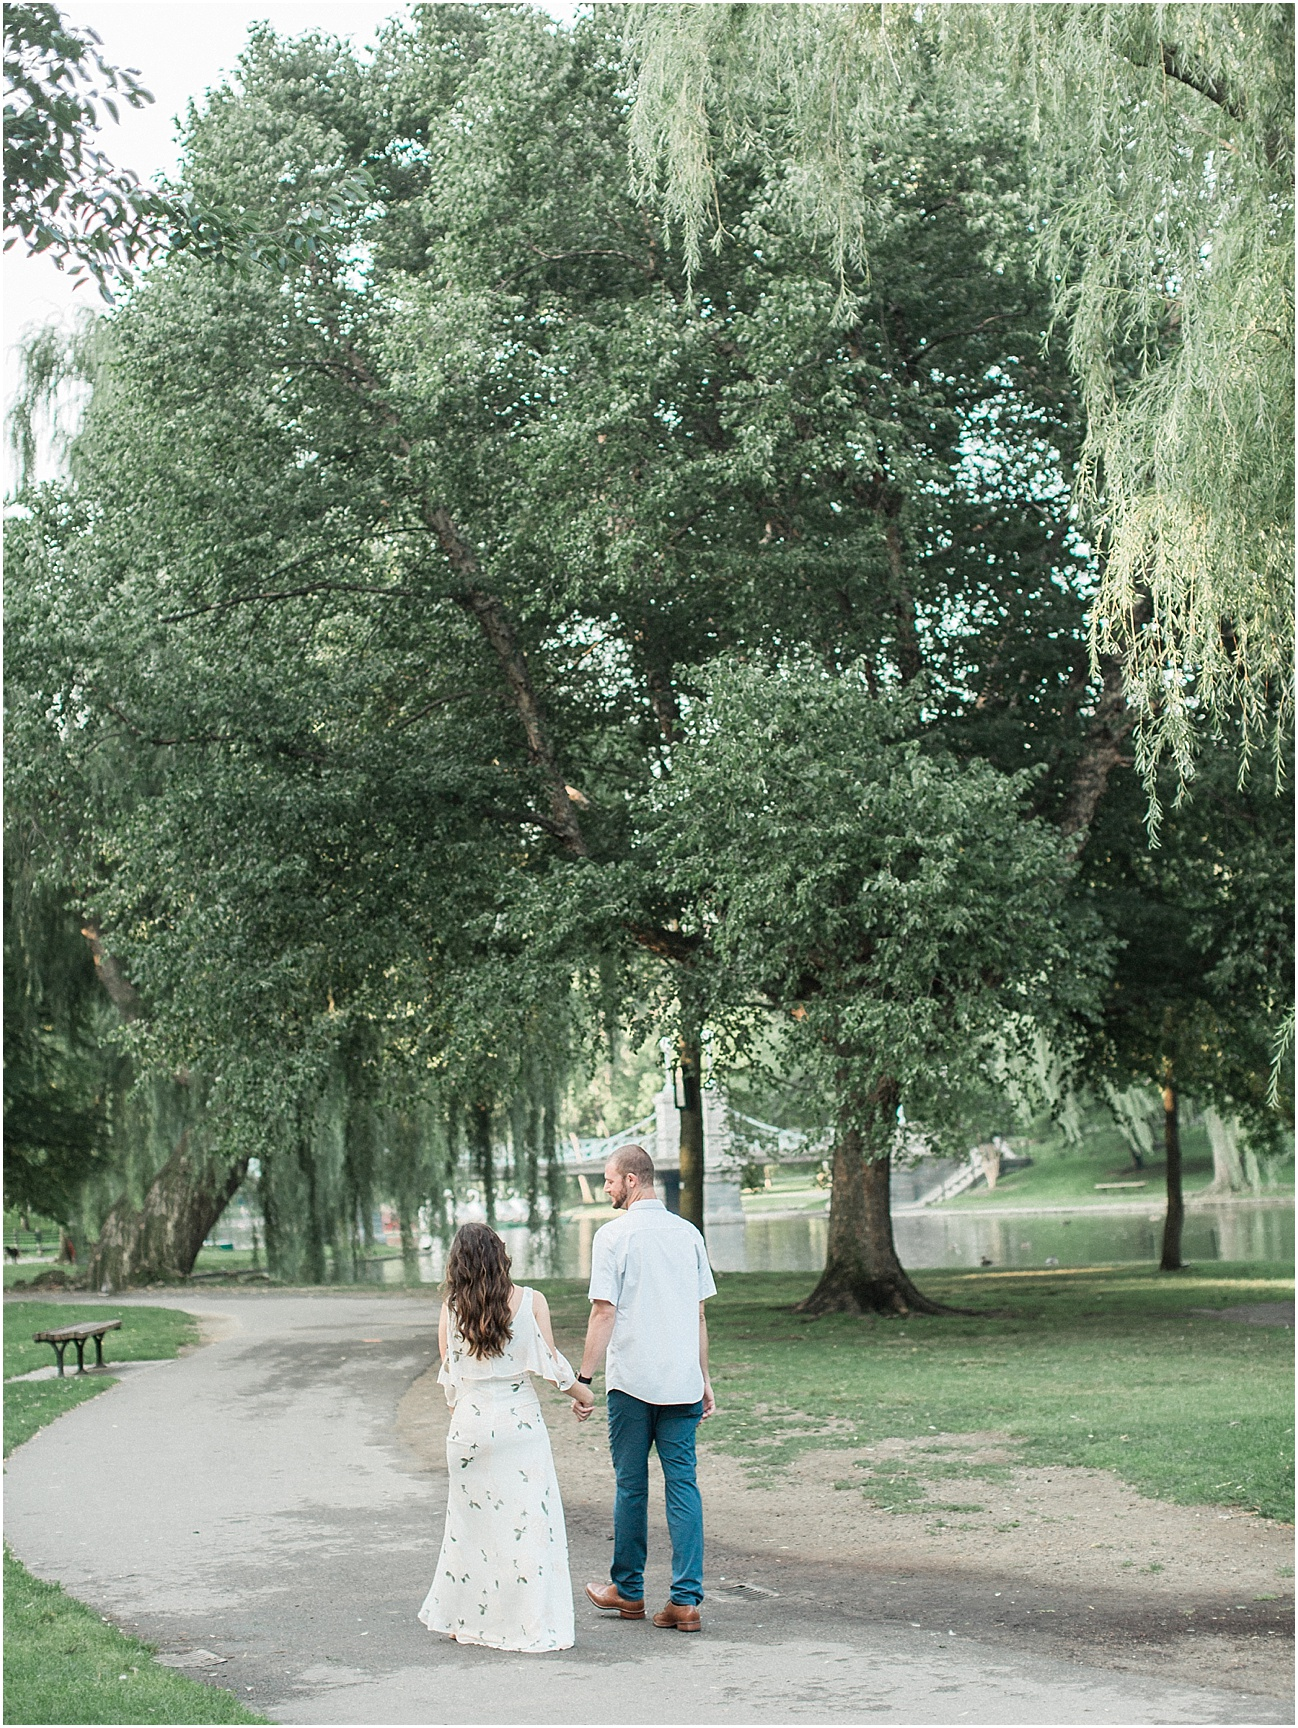 christina_frank_common_engagement_acorn_street_back_bay_cape_cod_boston_wedding_photographer_meredith_jane_photography_photo_0720.jpg